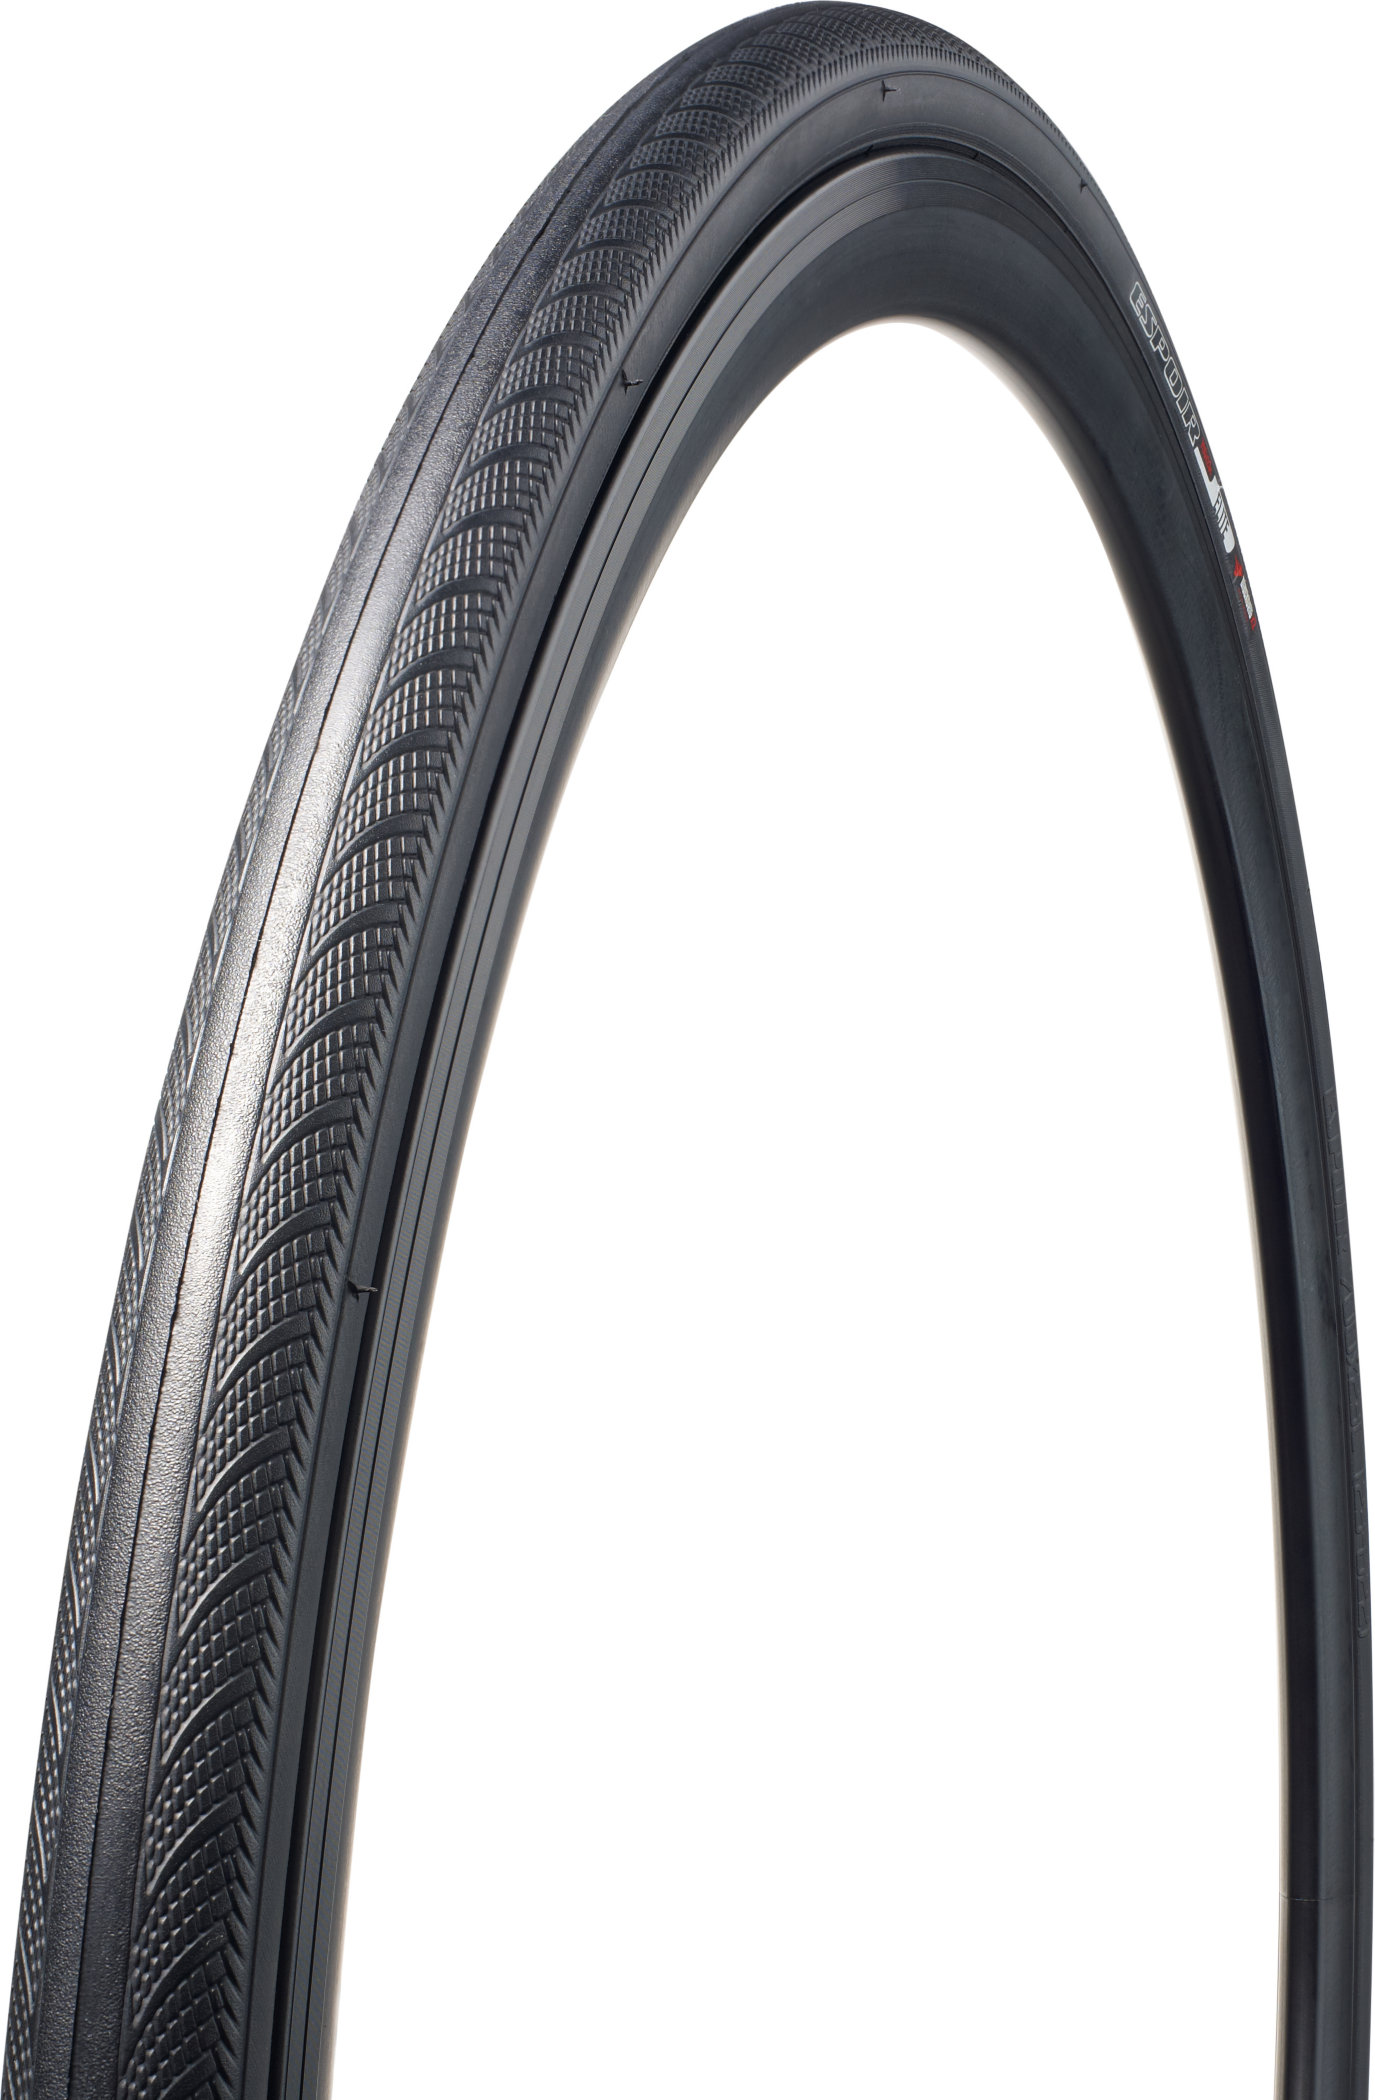 SPECIALIZED ESPOIR ELITE TIRE 700X23C - Alpha Bikes